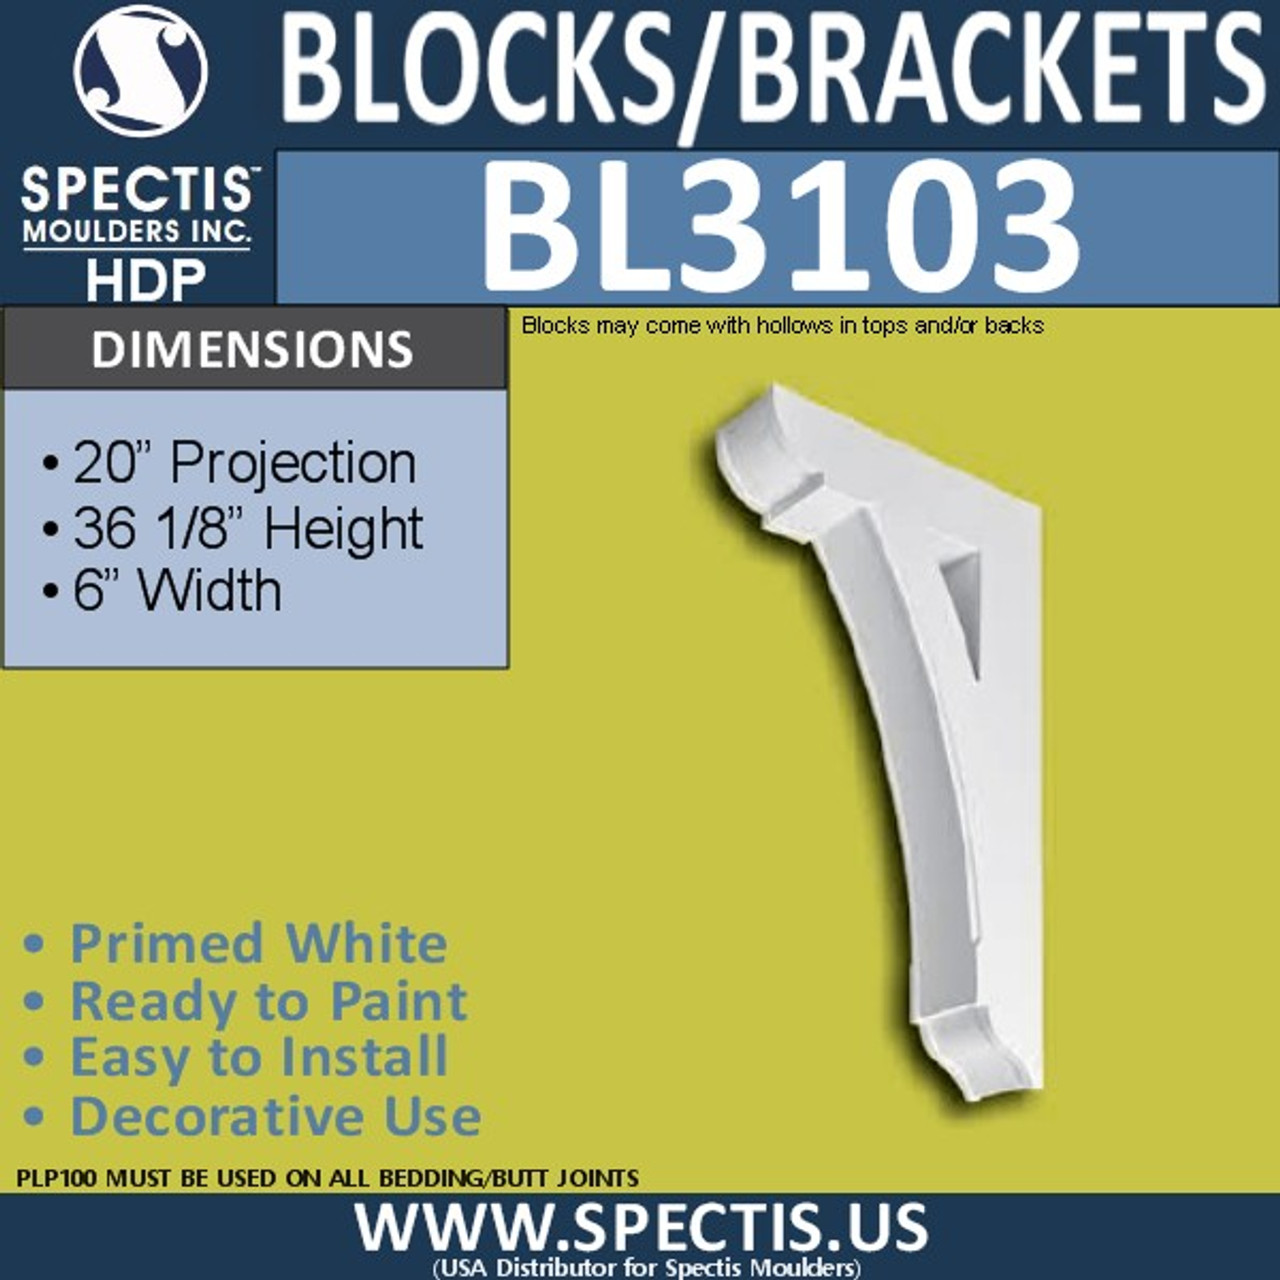 "BL3103 Eave Block or Bracket 6""W x 36""H x 20"" P"